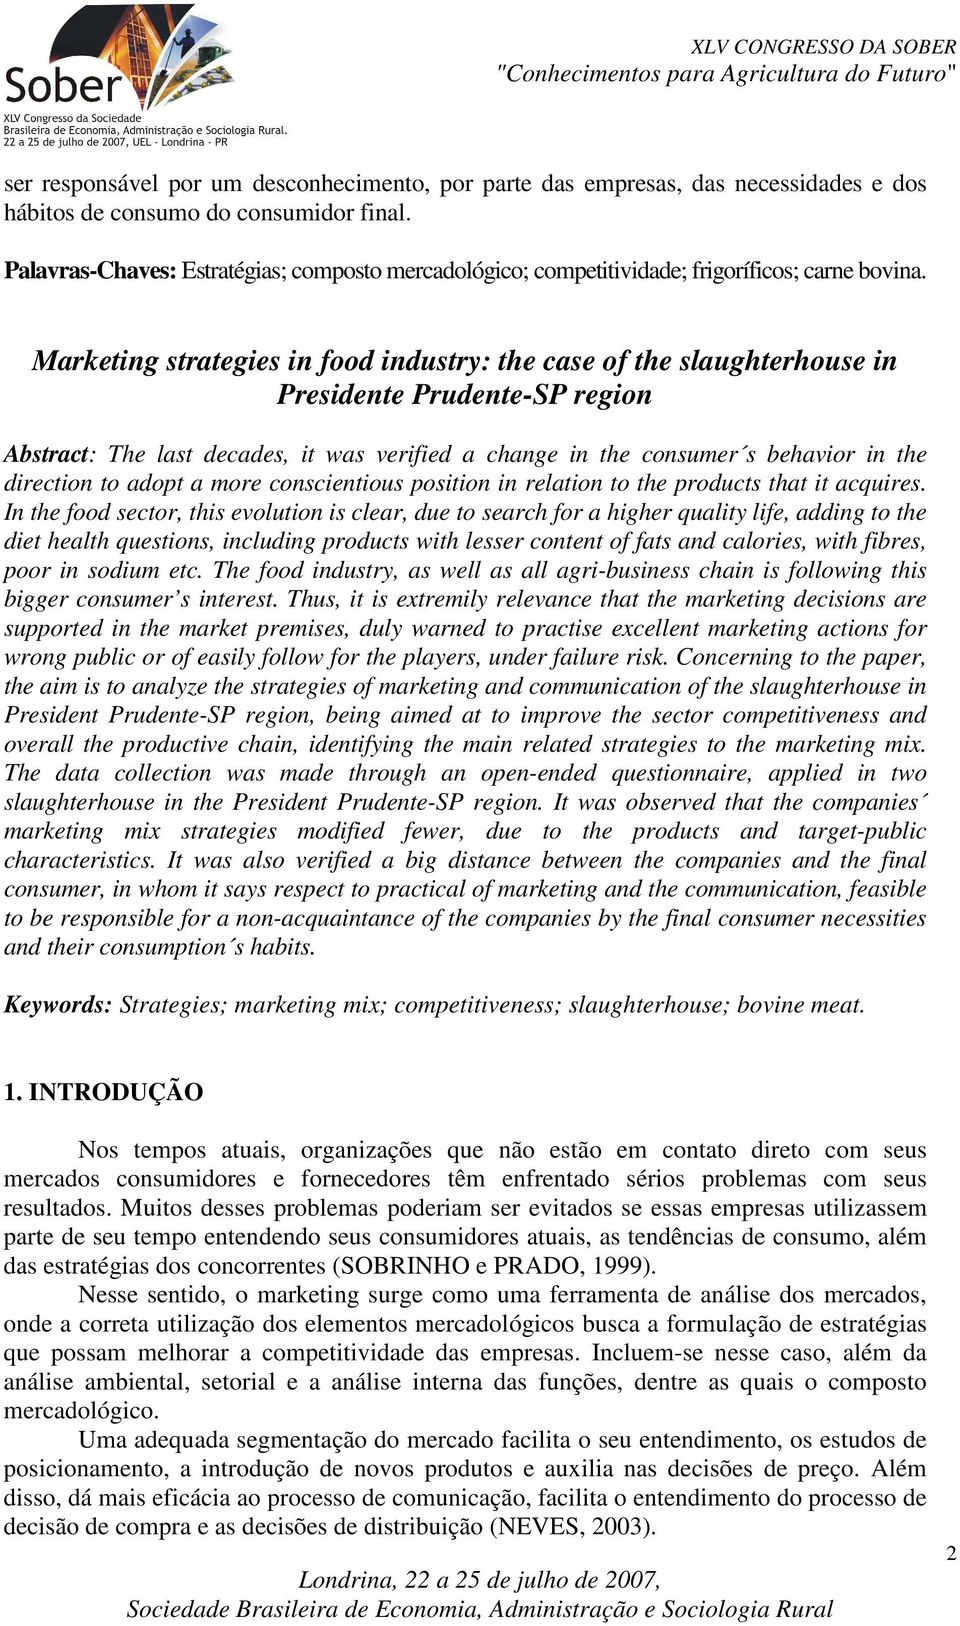 Marketing strategies in food industry: the case of the slaughterhouse in Presidente Prudente-SP region Abstract: The last decades, it was verified a change in the consumer s behavior in the direction